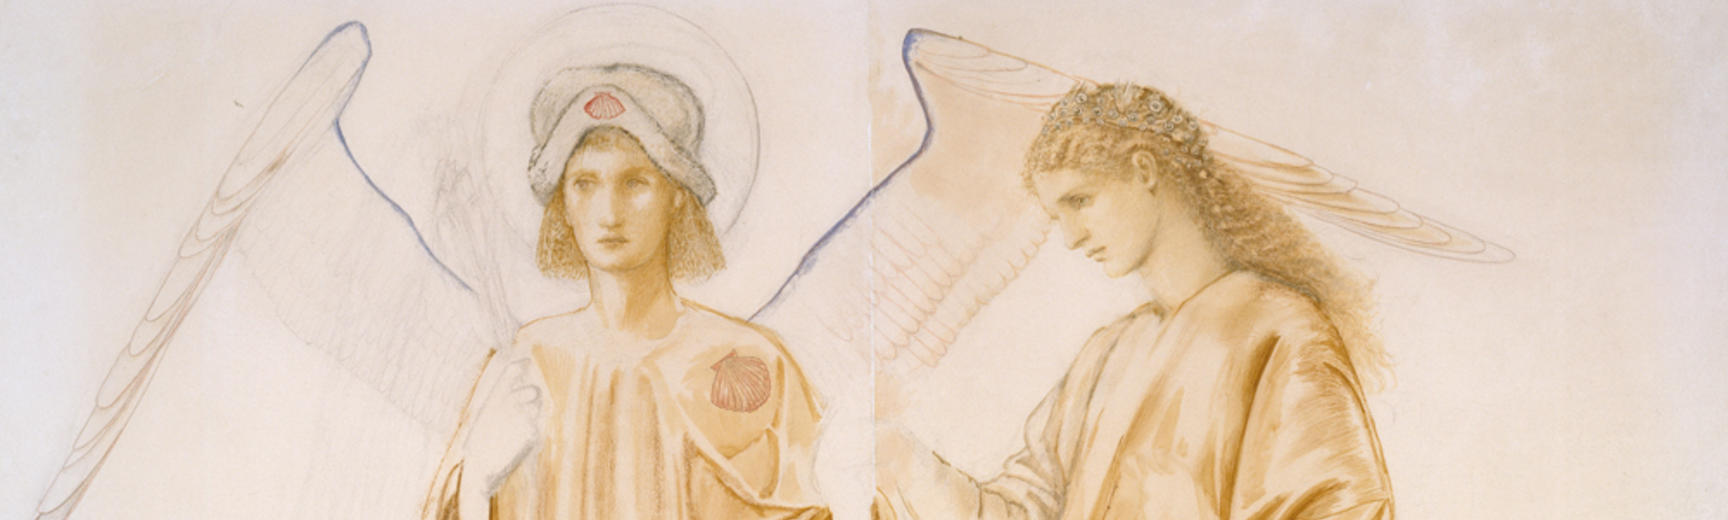 Drawing of two robed figures, one with large wings